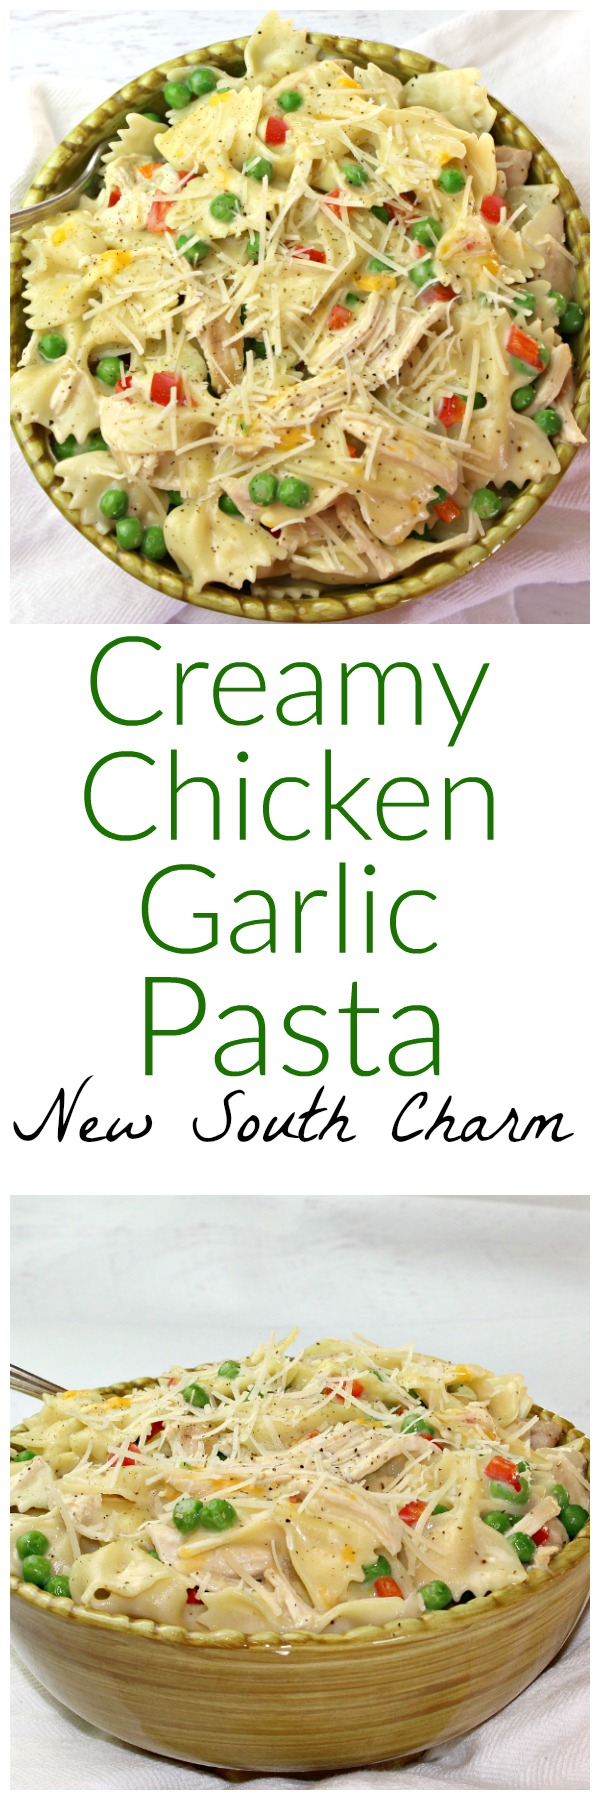 Cream Chicken Garlic Pasta